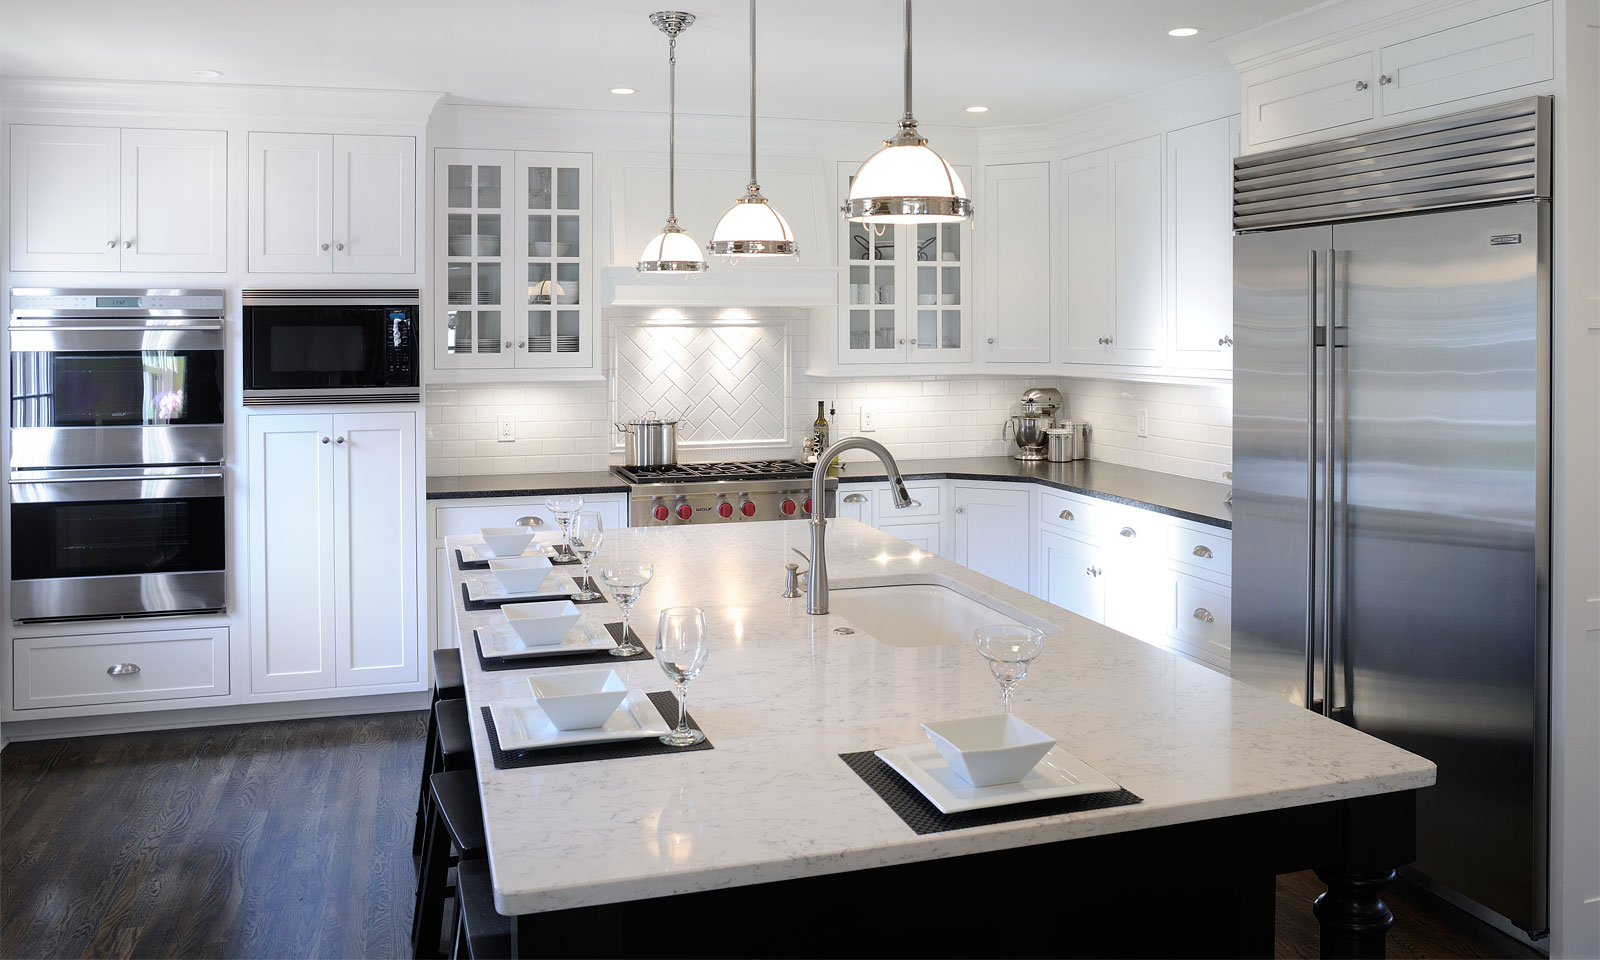 Dark Kitchen Floors White Transitional Cabinets With Black Counters